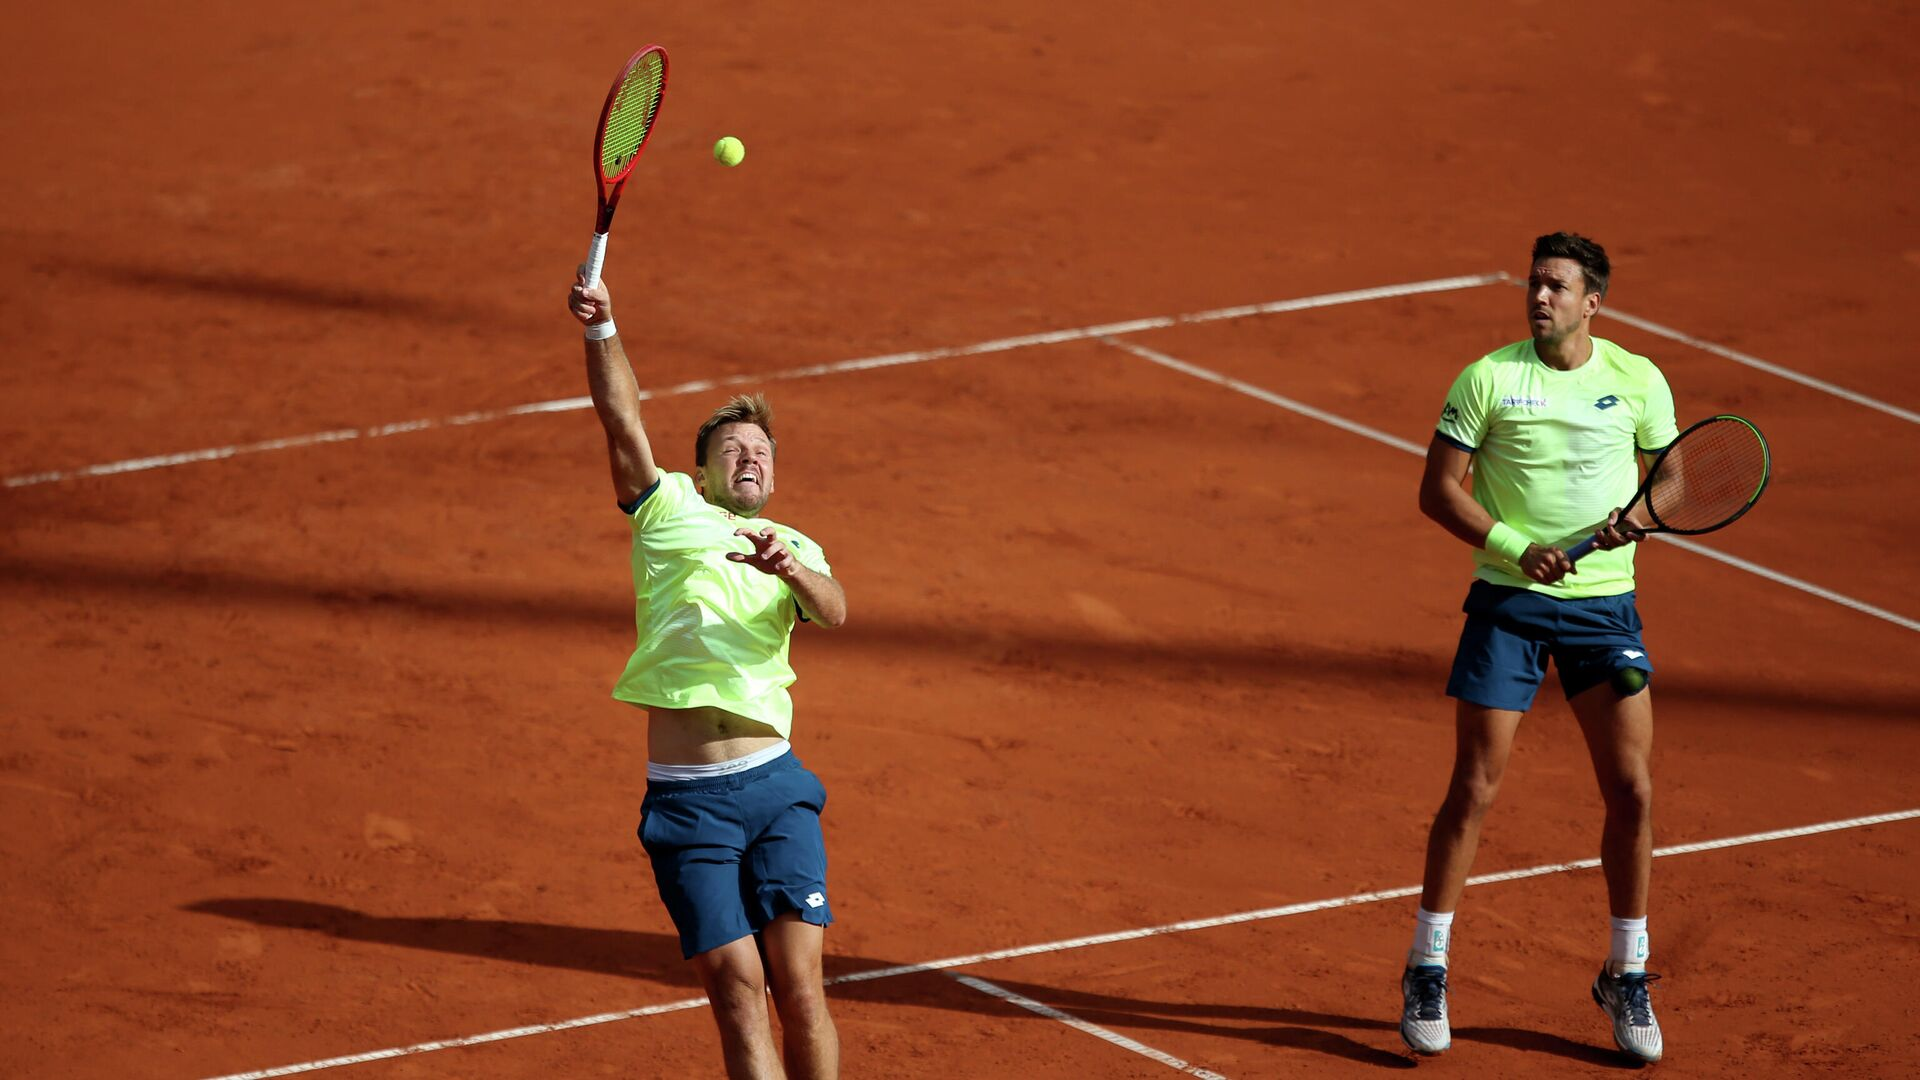 Tennis - ATP 500 - Hamburg European Open - Am Rothenbaum, Hamburg, Germany - September 24, 2020   Germany's Kevin Krawietz and Andreas Mies in action during their men's doubles match against Austria's Oliver Marach and South Africa's Raven Klaasen   REUTERS/Cathrin Mueller - РИА Новости, 1920, 08.10.2020